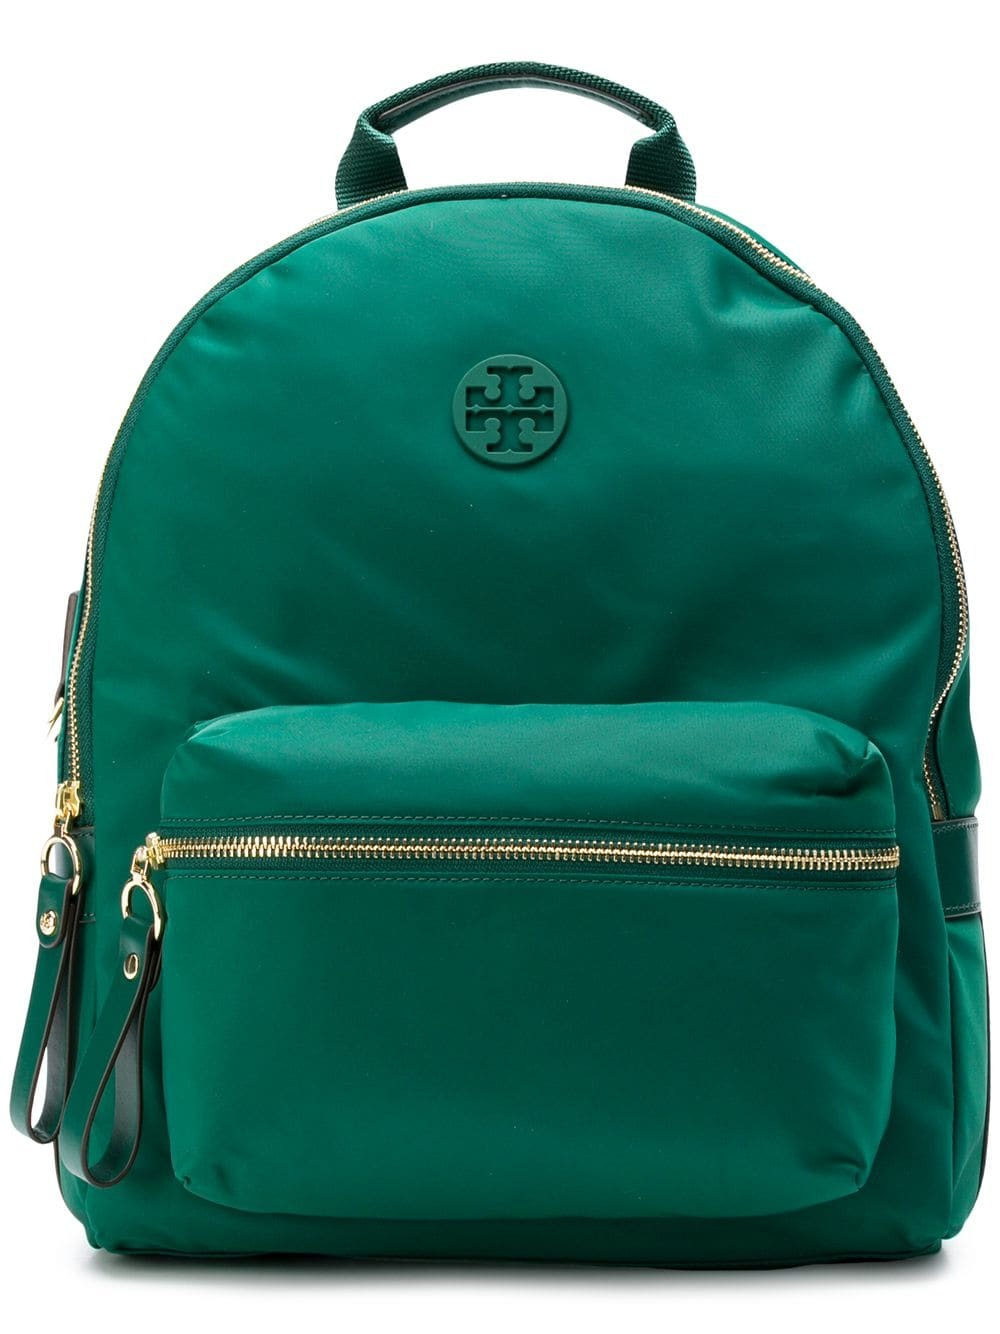 NWT Tory Burch Tilda Nylon Zip Backpack